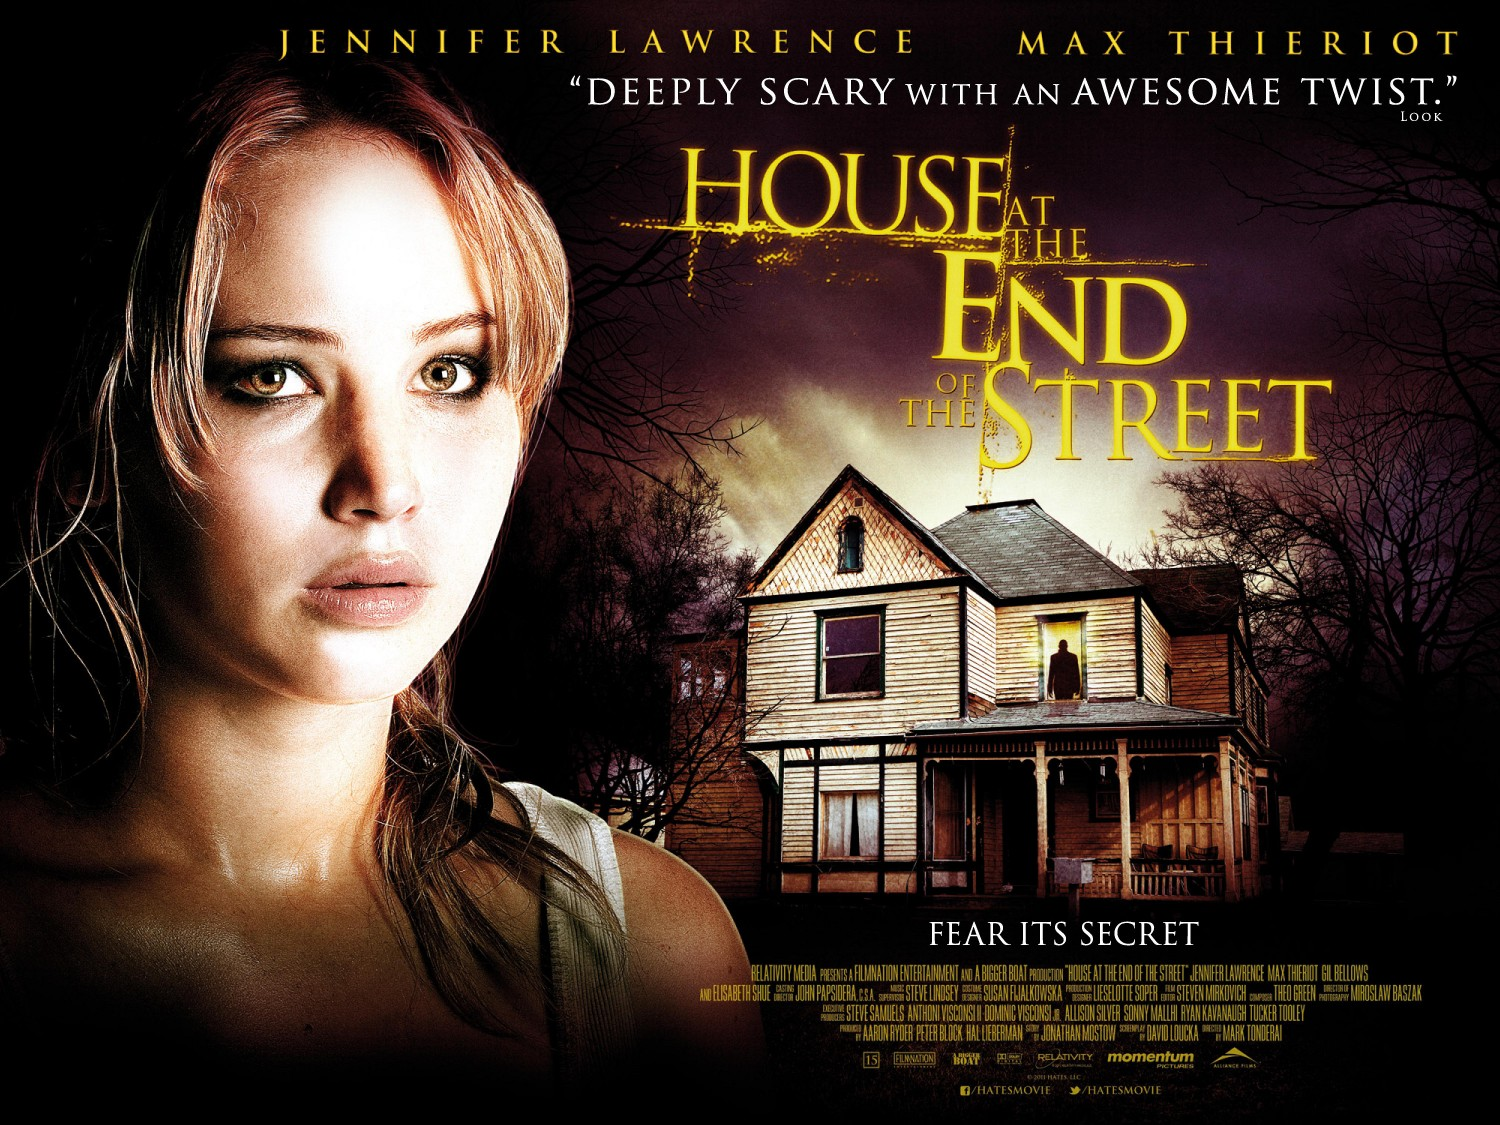 http://1.bp.blogspot.com/-tkqVblXIHrI/UF4uQZzl_FI/AAAAAAAAC_Q/9FRi2GqrxME/s1600/House-At-The-End-Of-The-Street-Poster-Jennifer-Lawrence.jpg